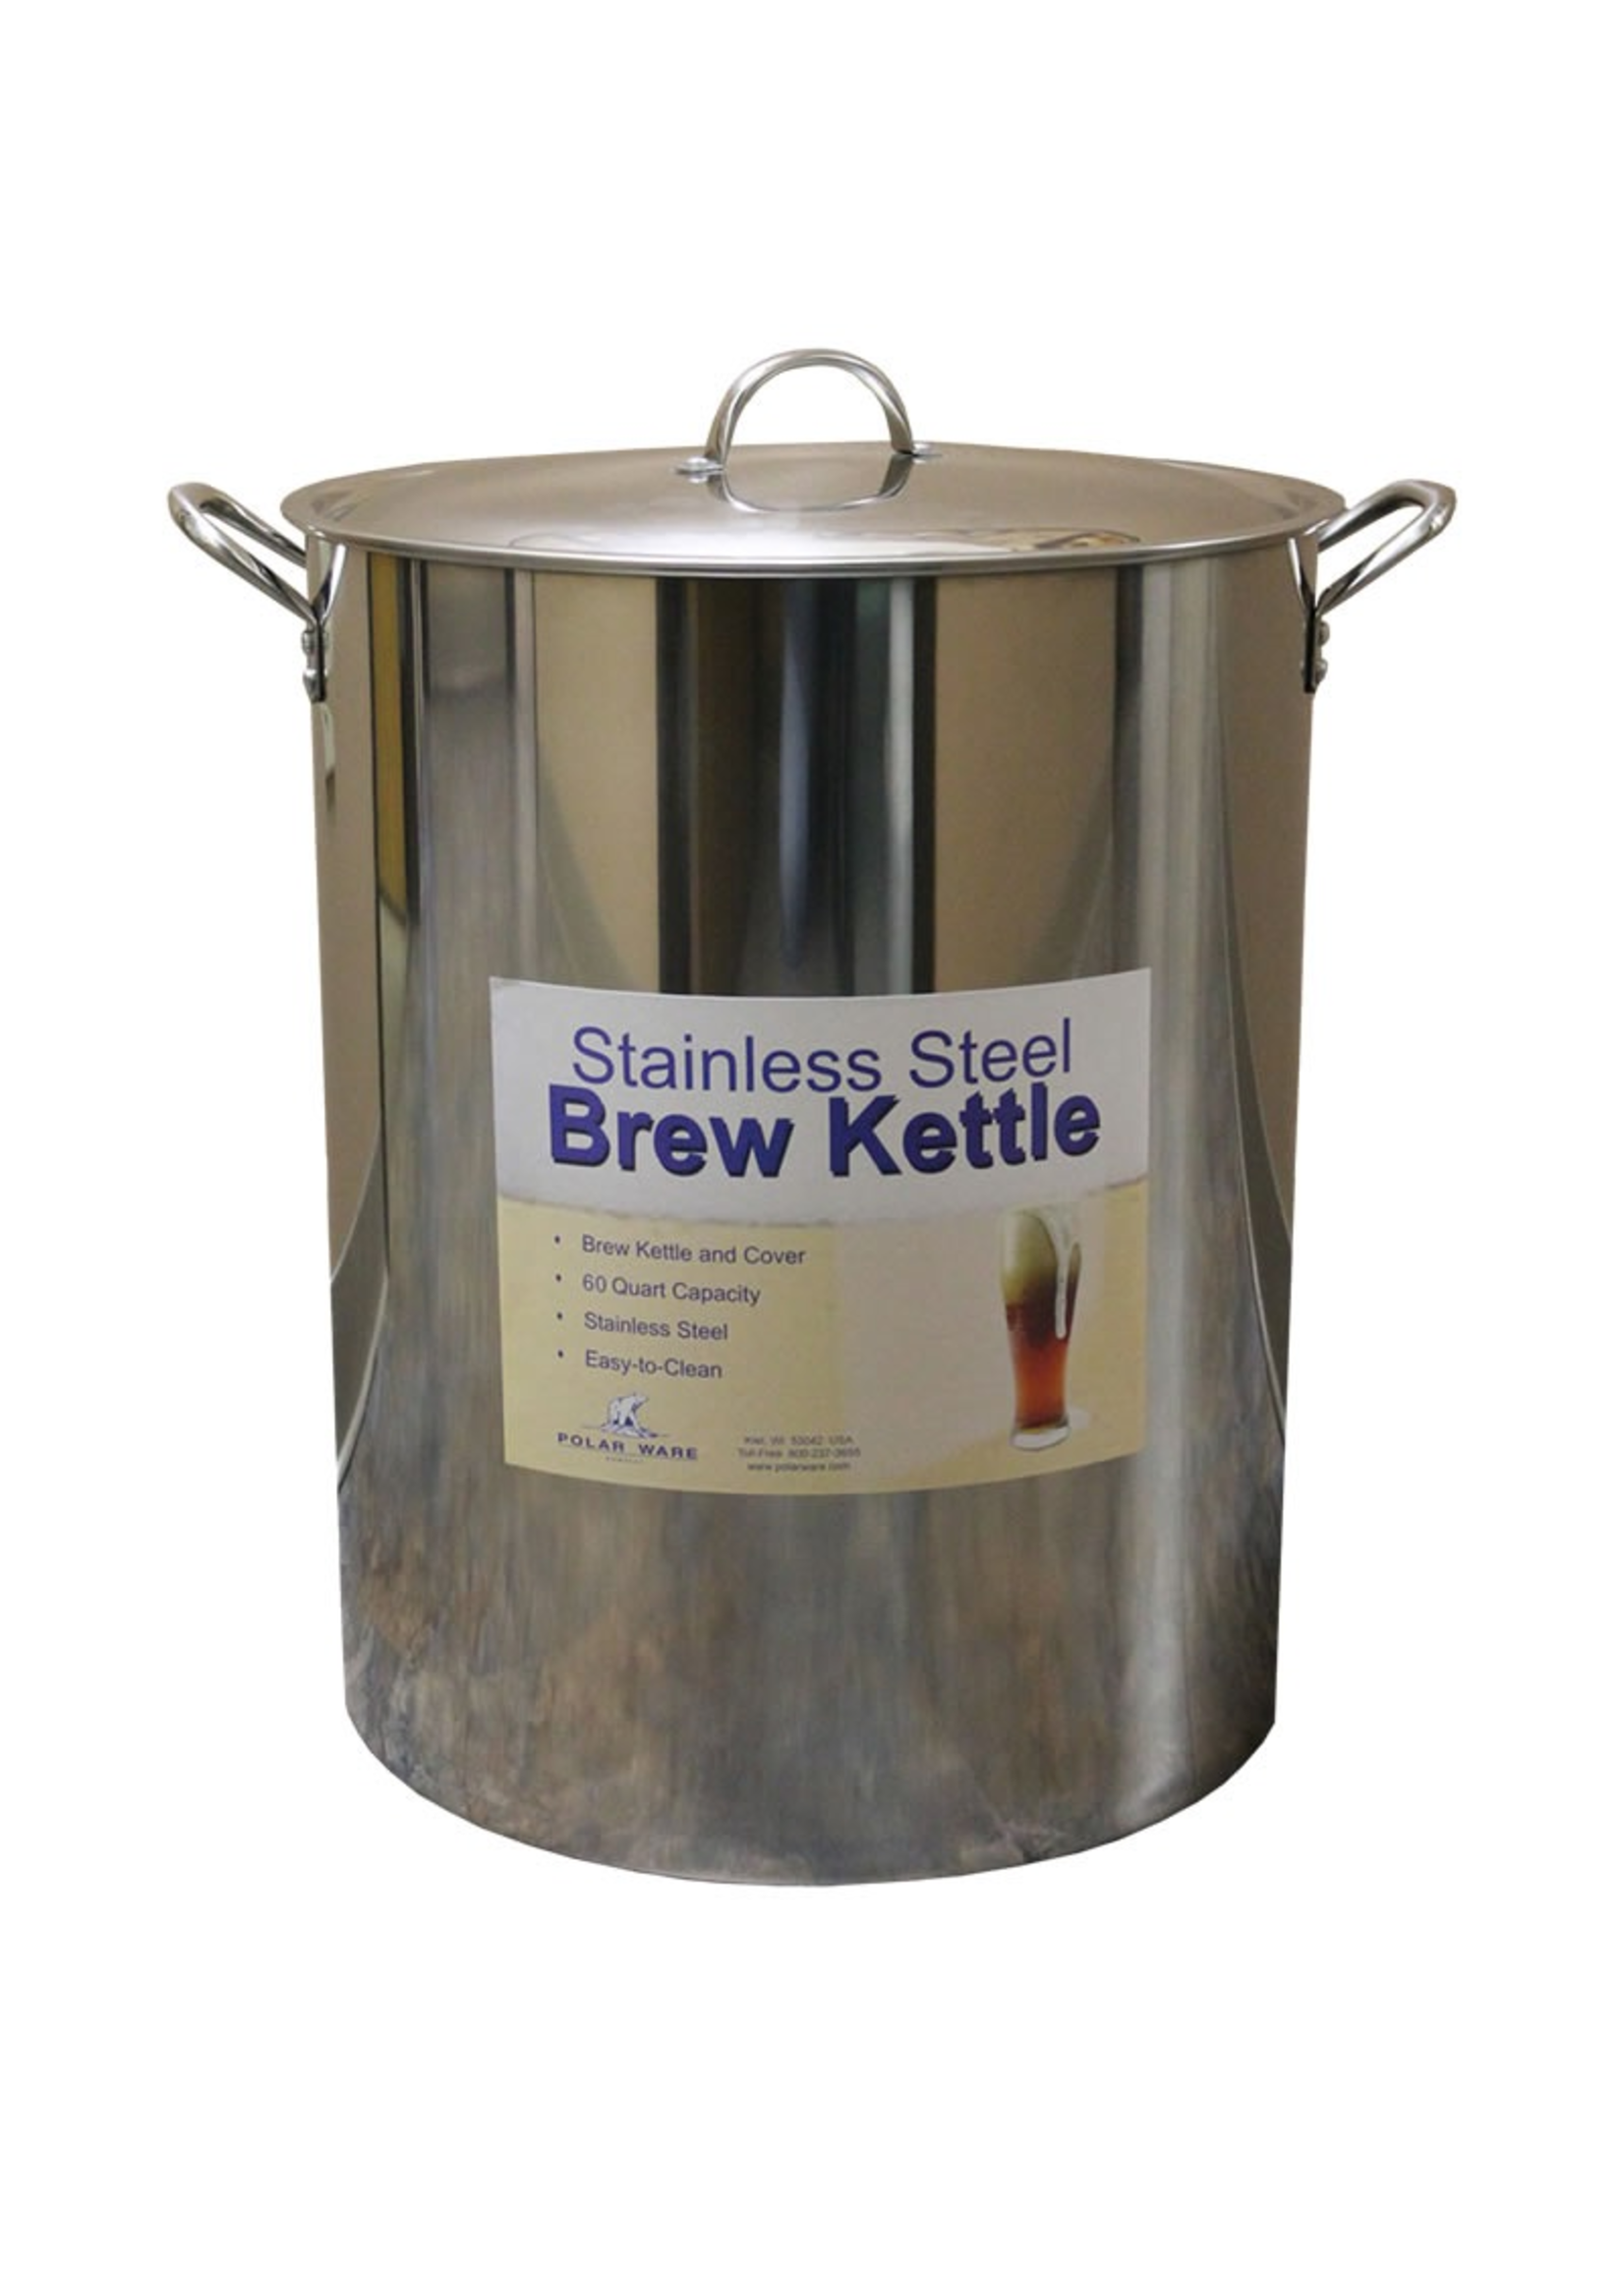 Brewing Polar Ware 60 Qt Stainless Steel Brew Kettle with Lid